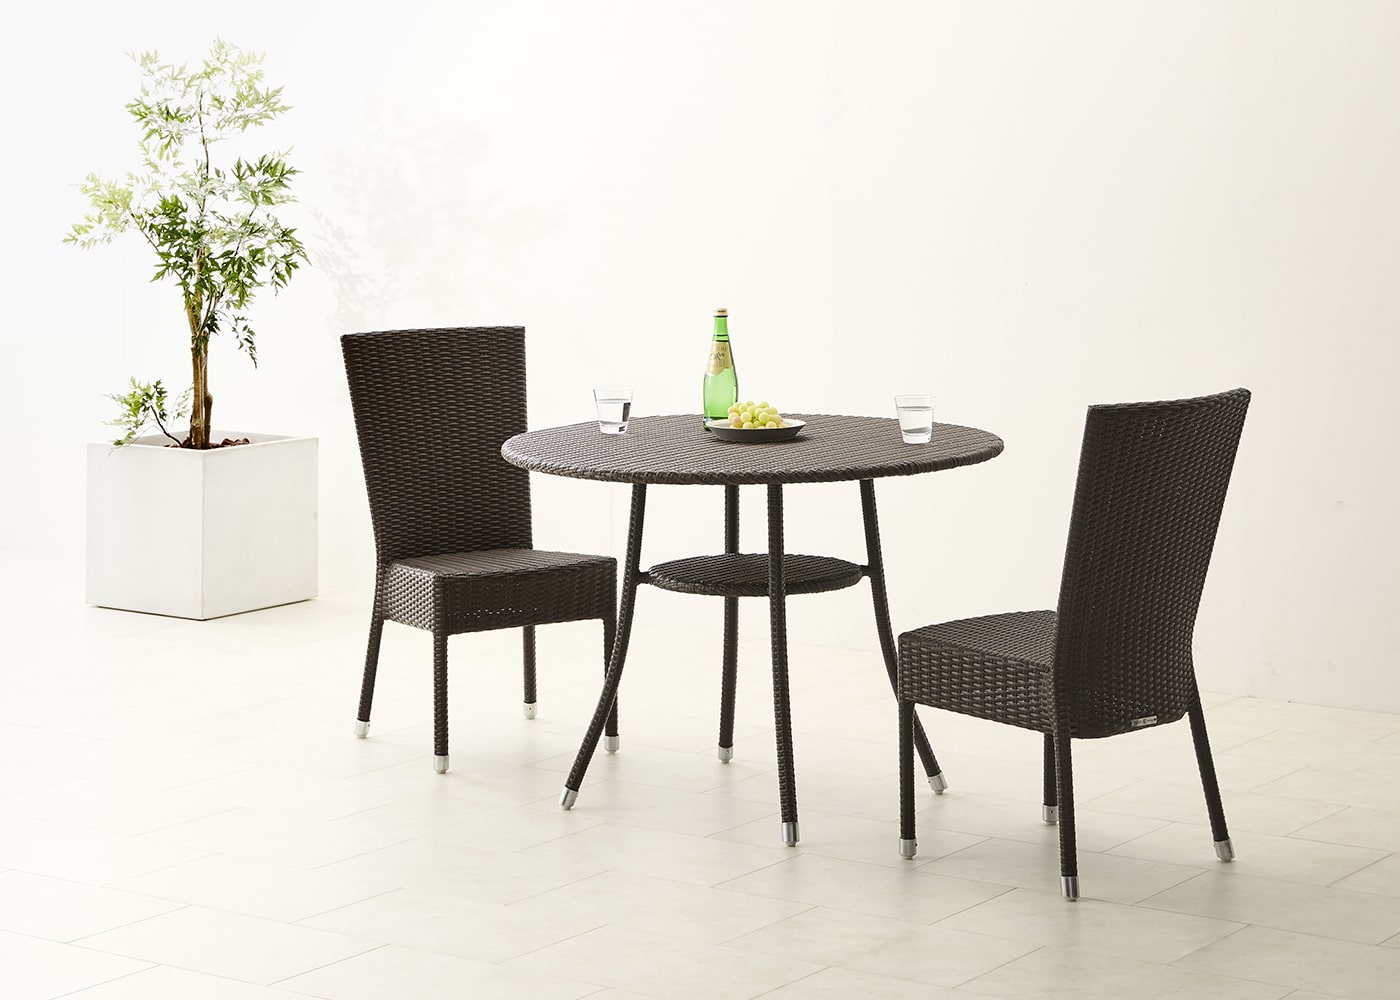 Garden table 1000 set chairx2ガーデン・テーブル 1000 セット チェア×2